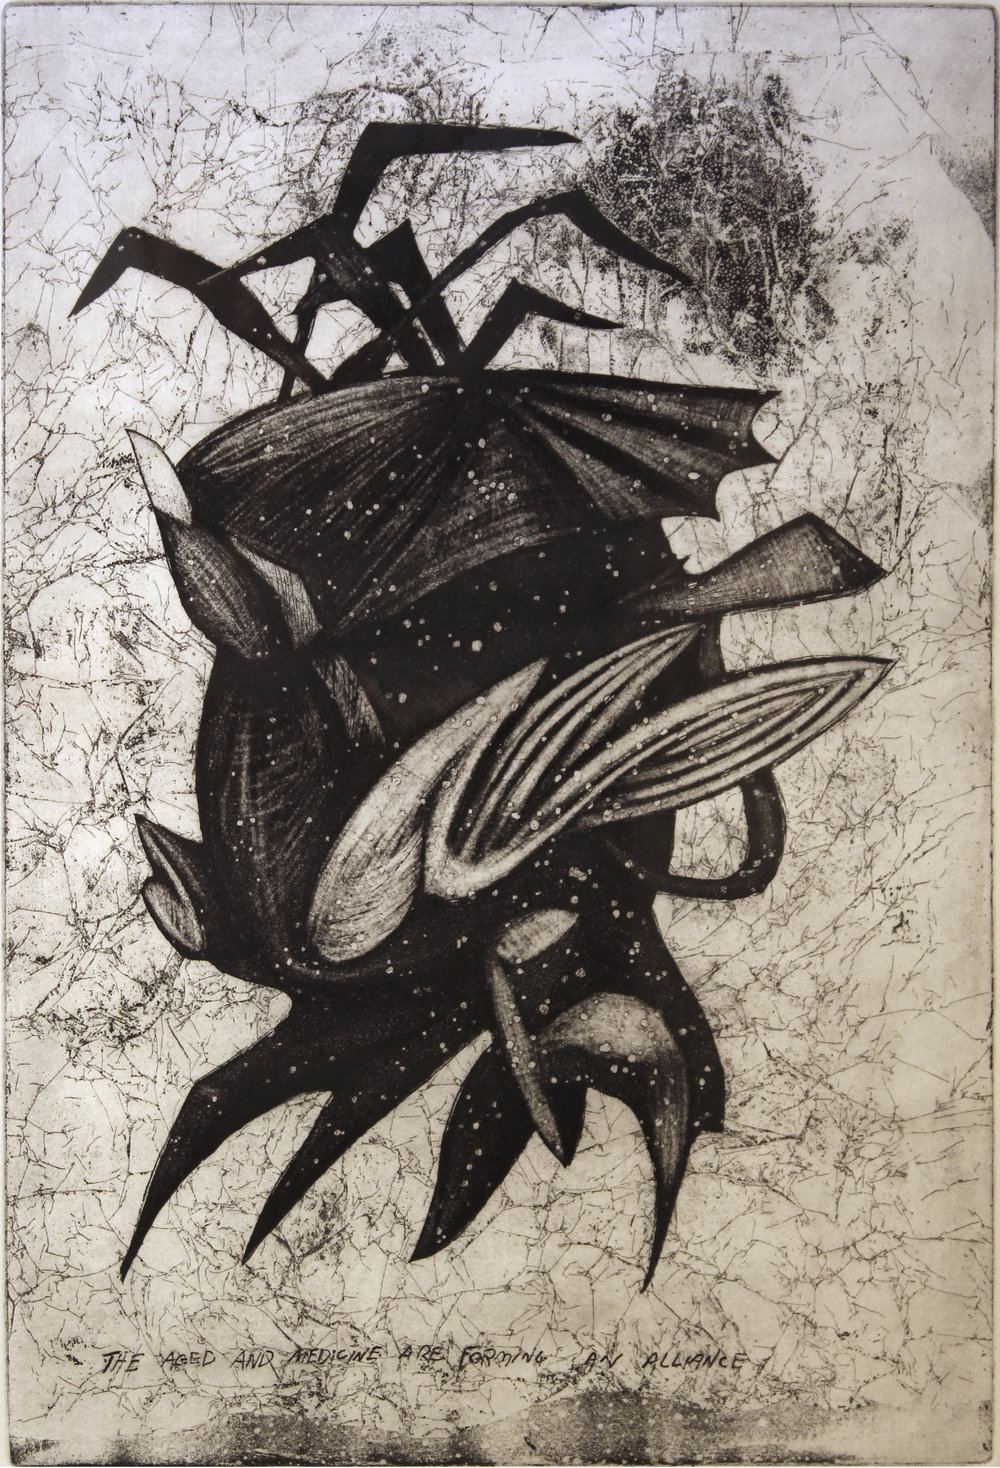 "The Aged and Medicine Are Forming an Alliance,   1996   etching 3/25  27"" x 21"""